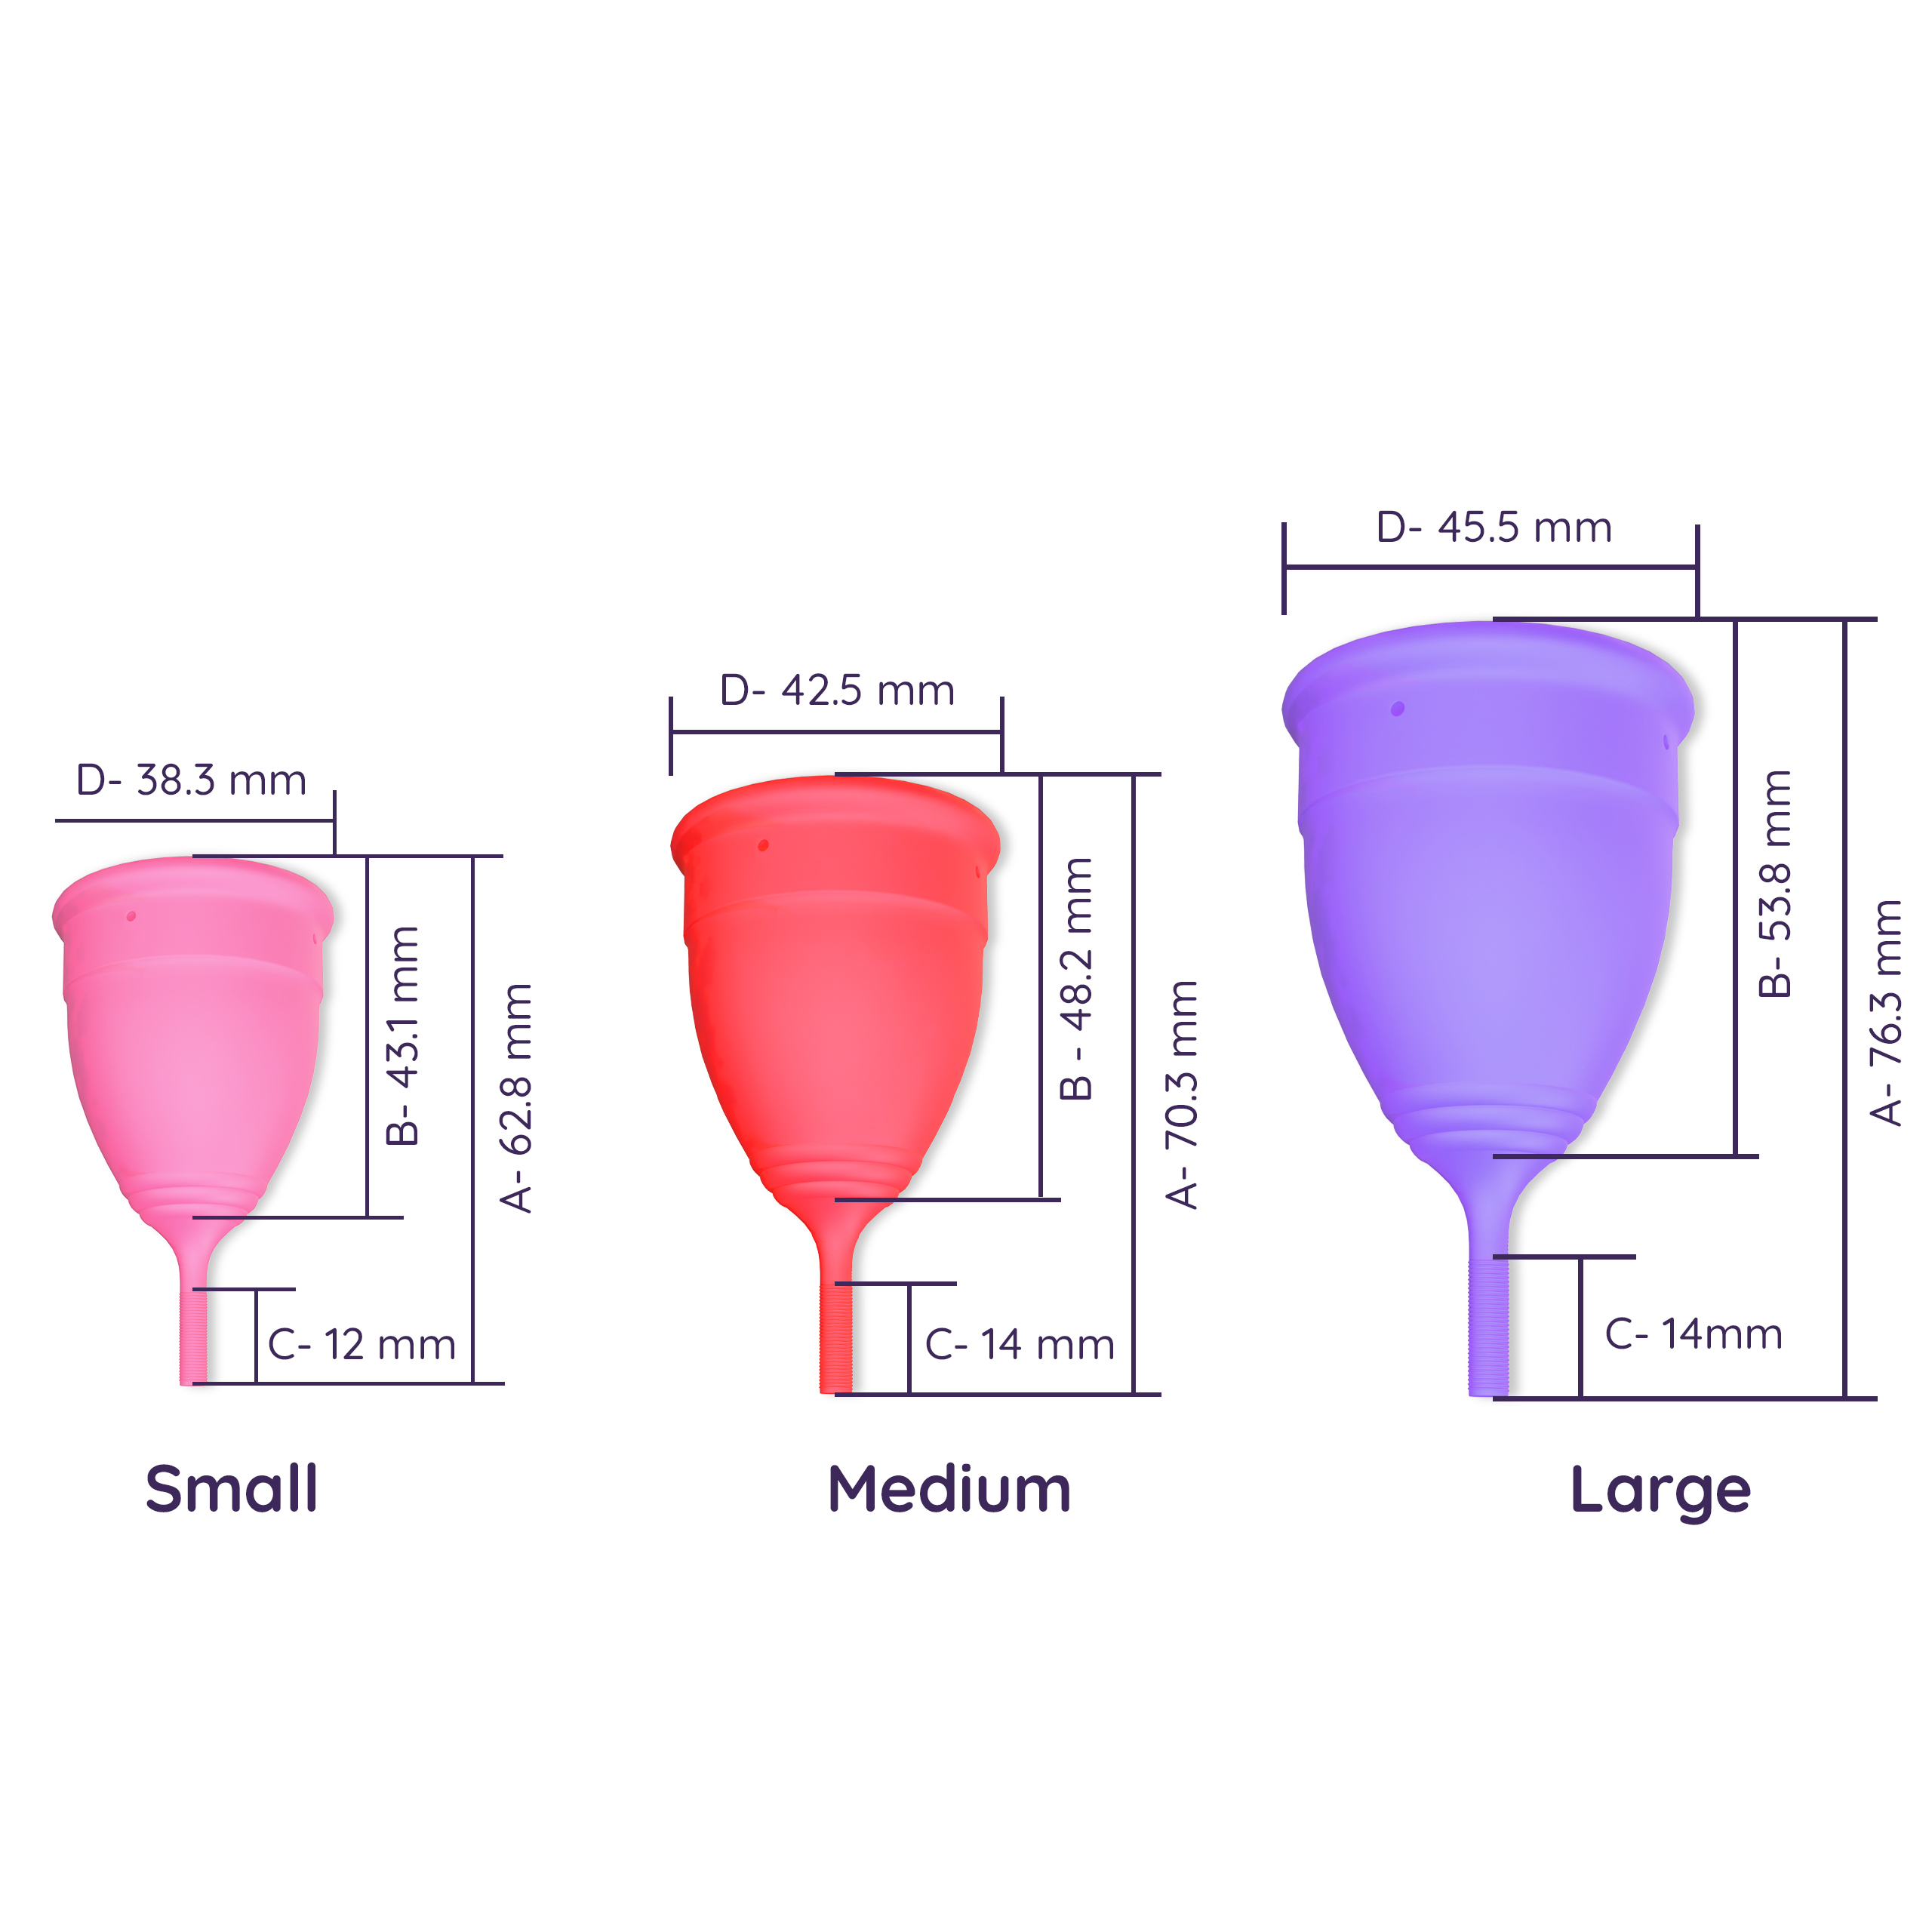 Sanfe Reusable Menstrual Cup with No Rashes, Leakage Or Odor - Premium Design for Women - Small (Pack of 2)